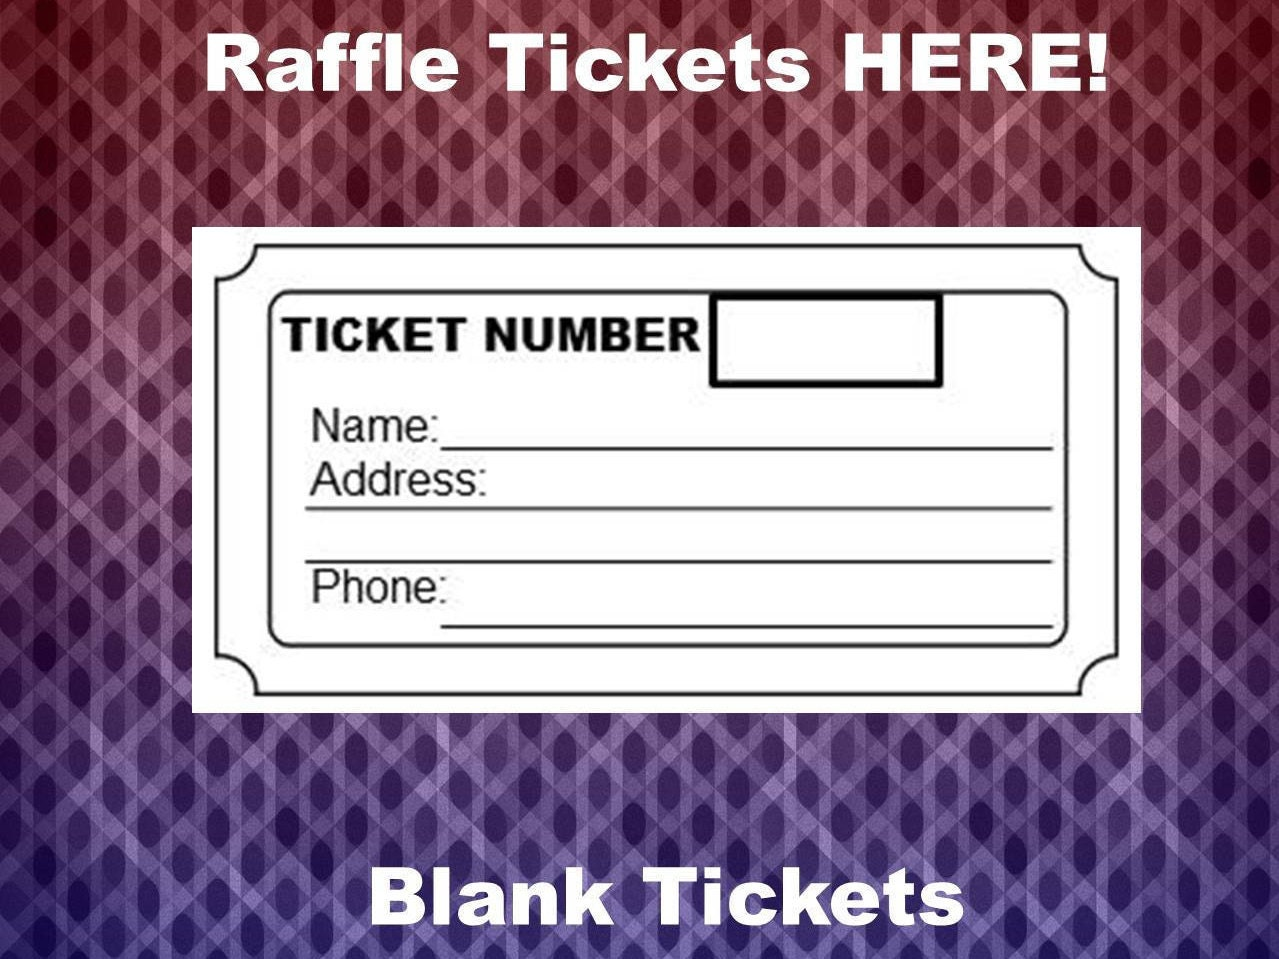 raffle ticket template 8 blank raffle tickets per page party